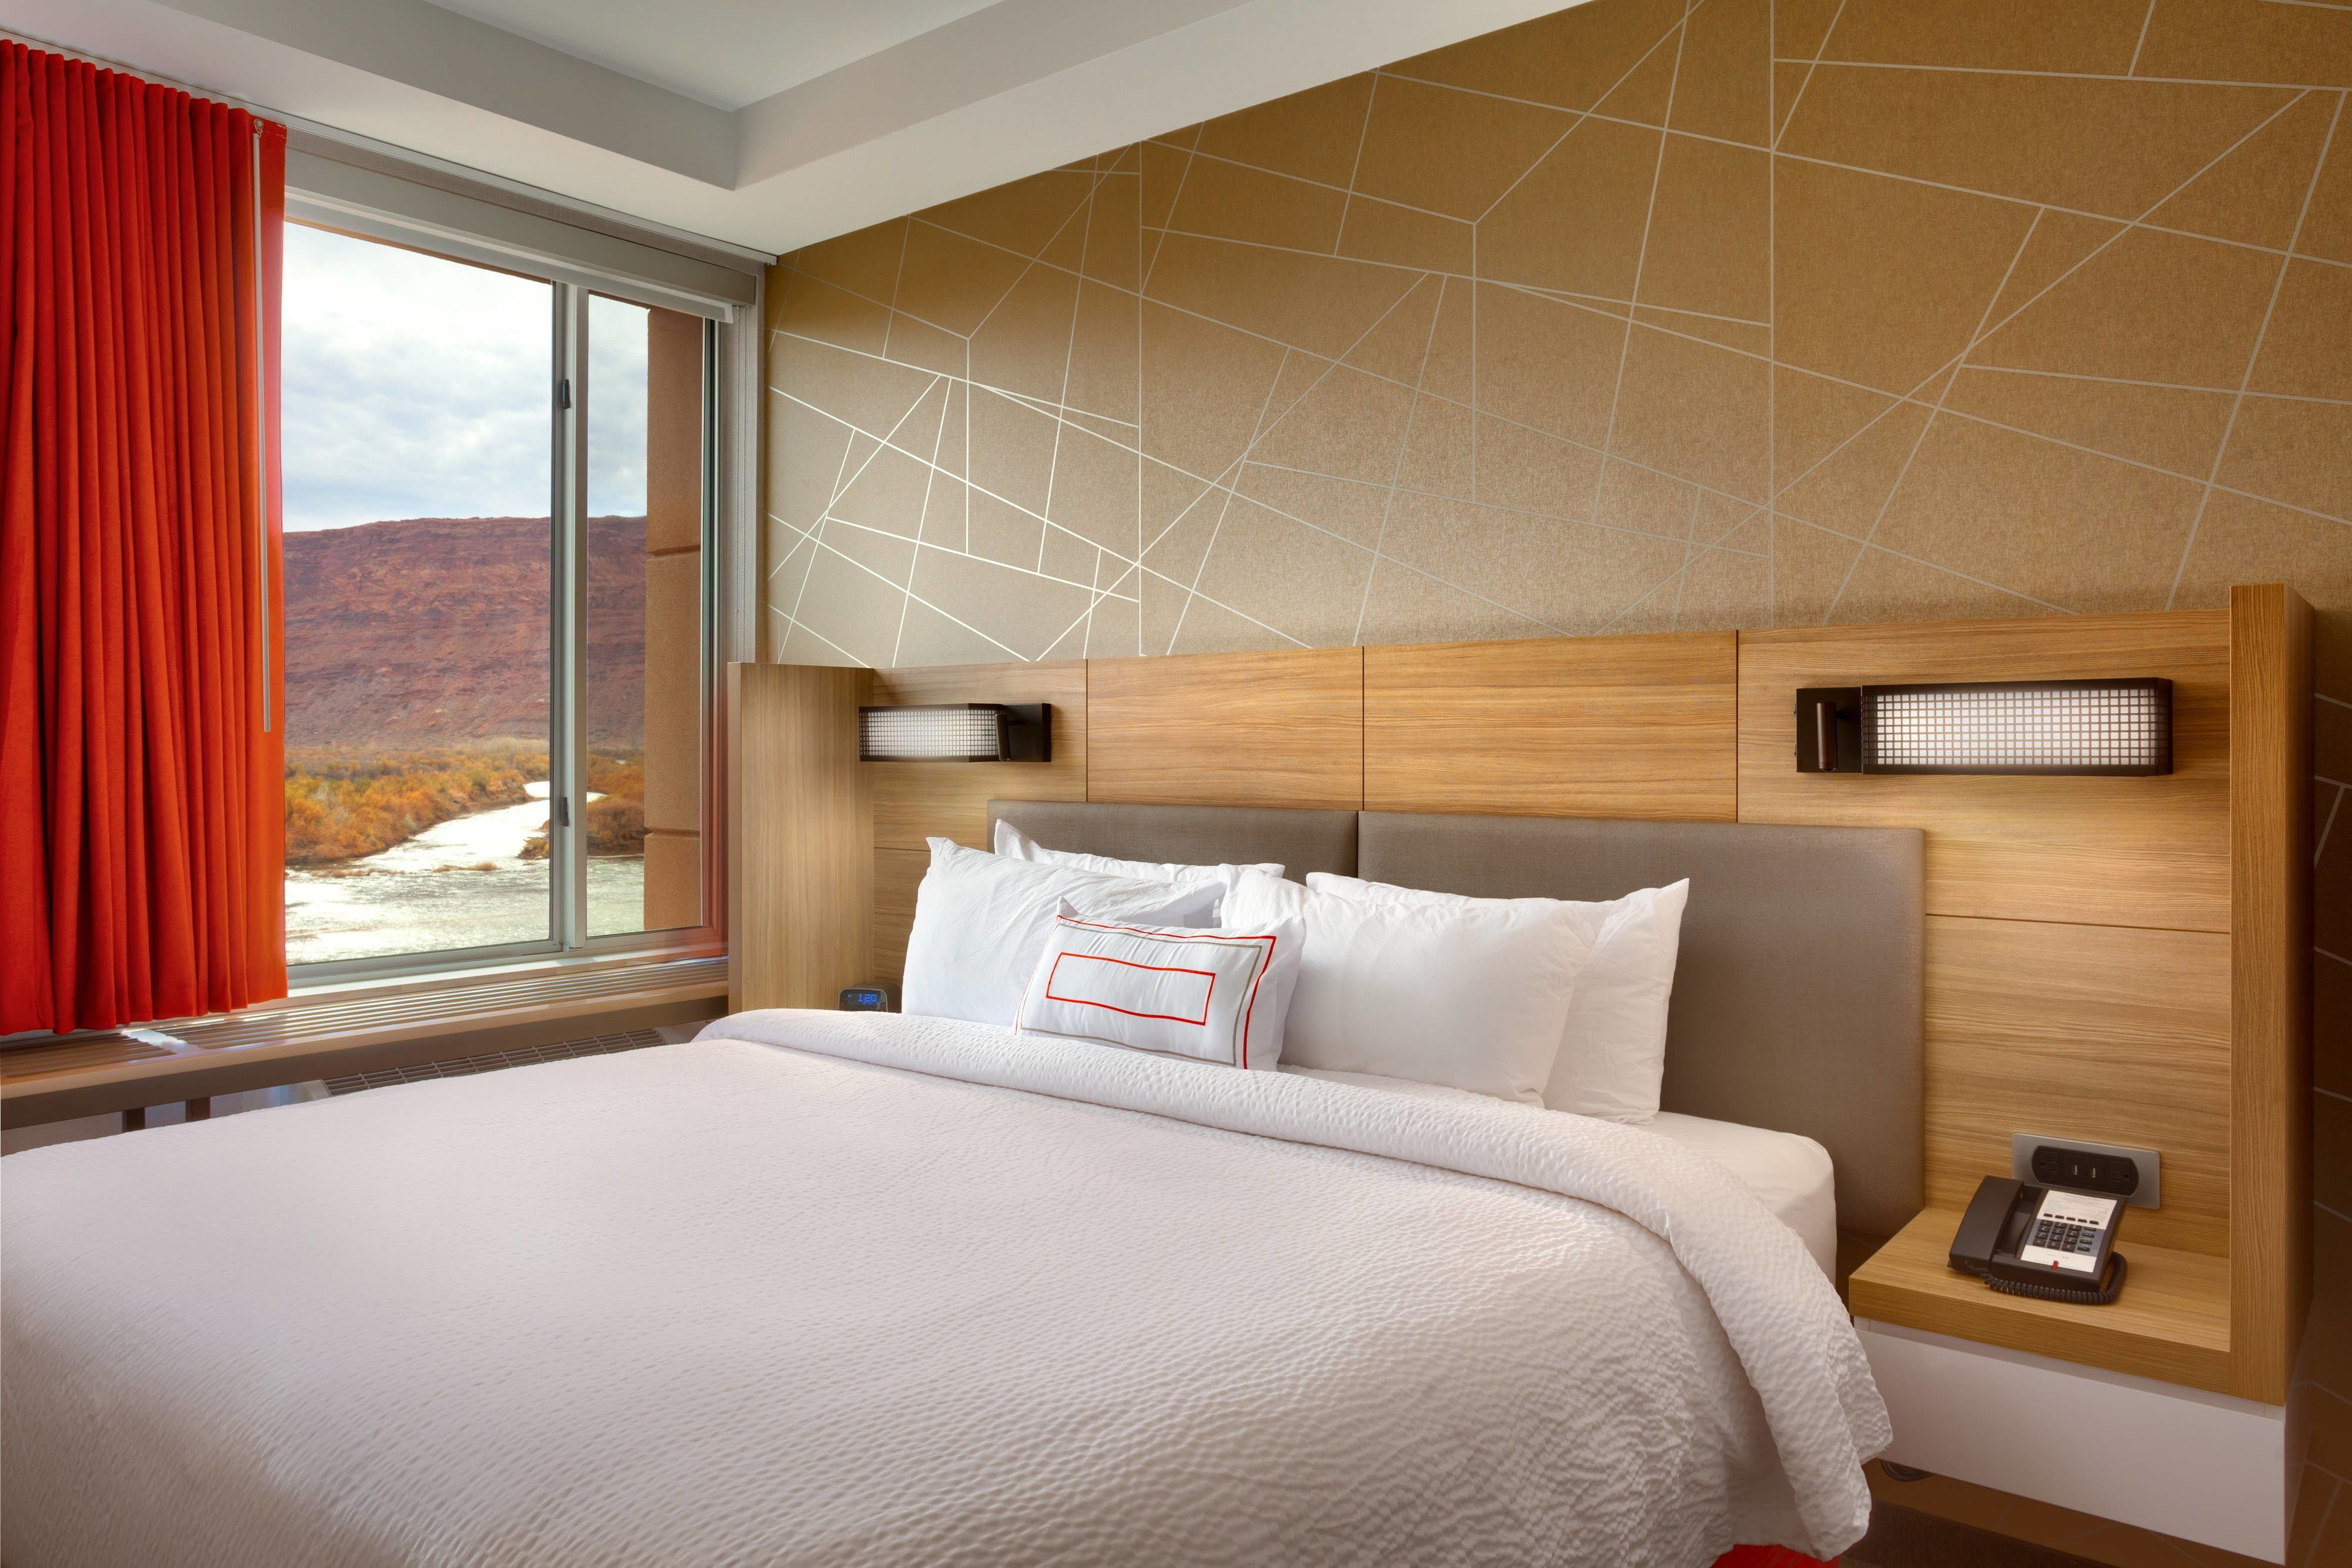 Springhill Suites Moab Family Suite Bedroom Memorable Guest Rooms Suites Springhill Bedroom Suite